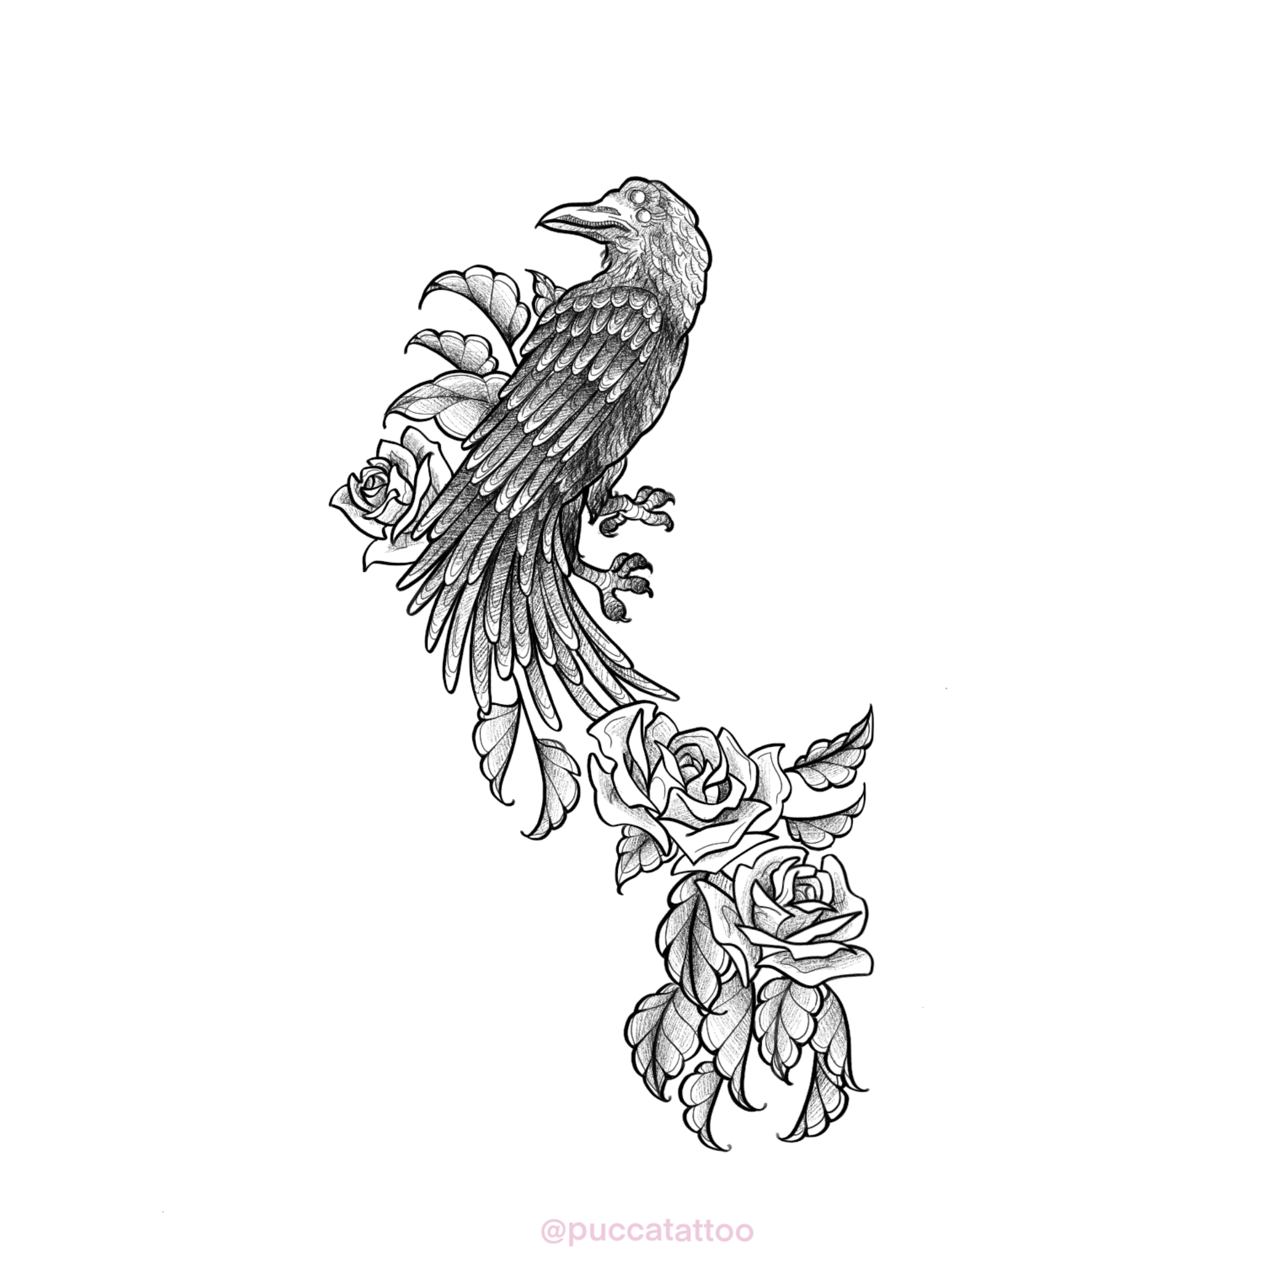 [For Hire] Crow tattoo design I've made for a half sleeve. I'm open for comissions!